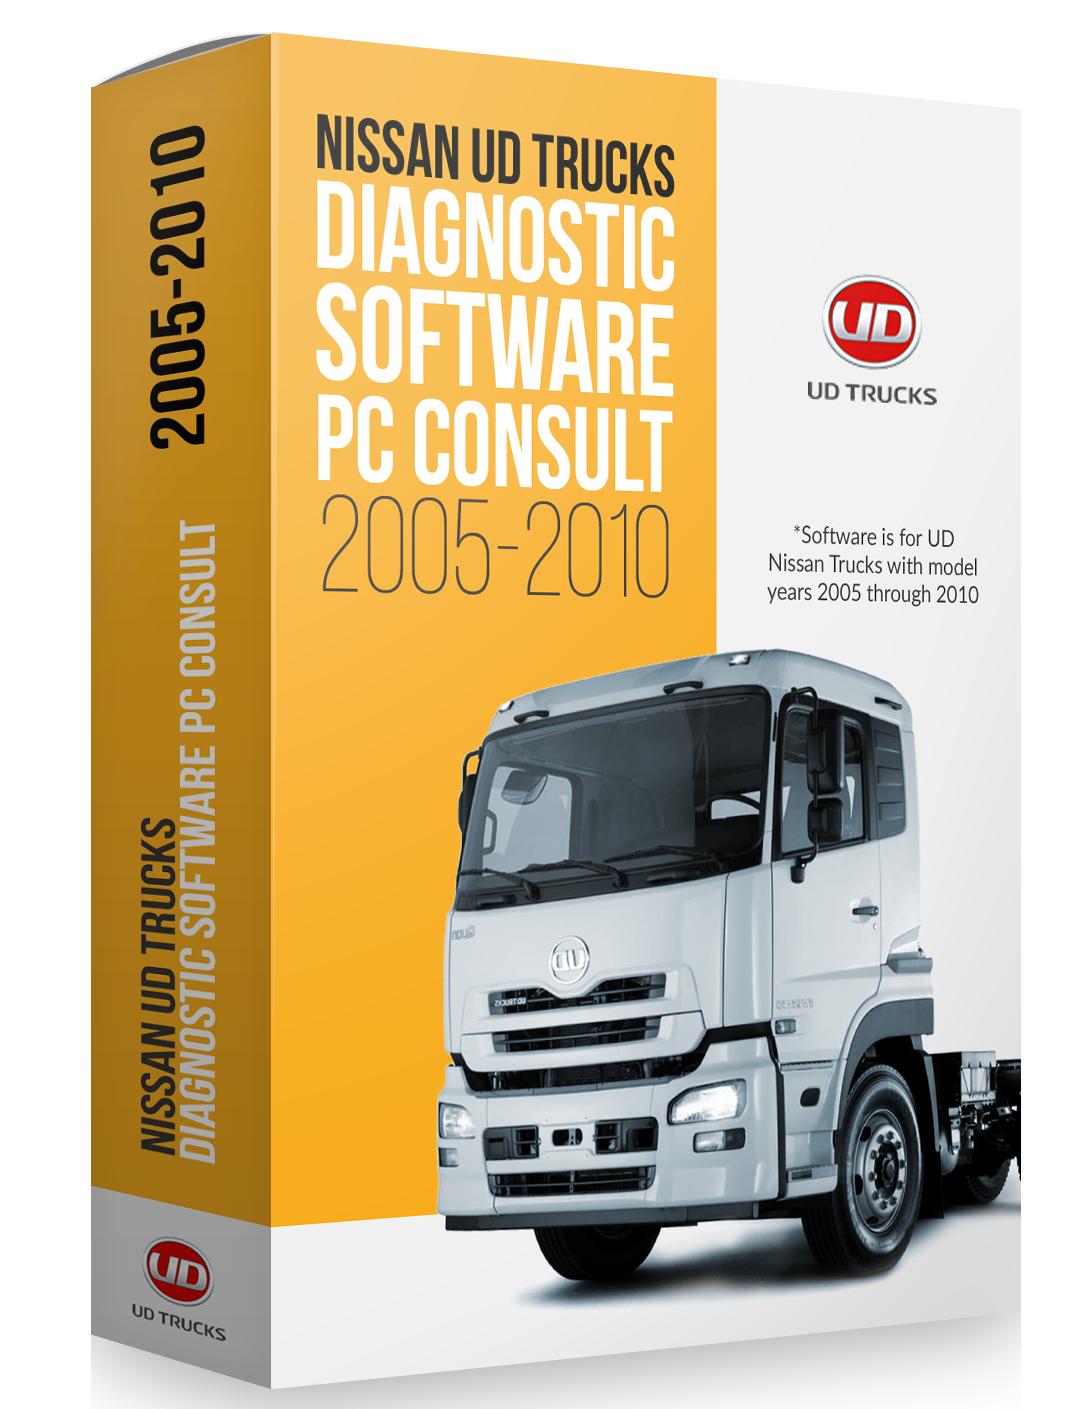 Nissan UD Trucks Diagnostic Software PC Consult (2005-2010) 0047